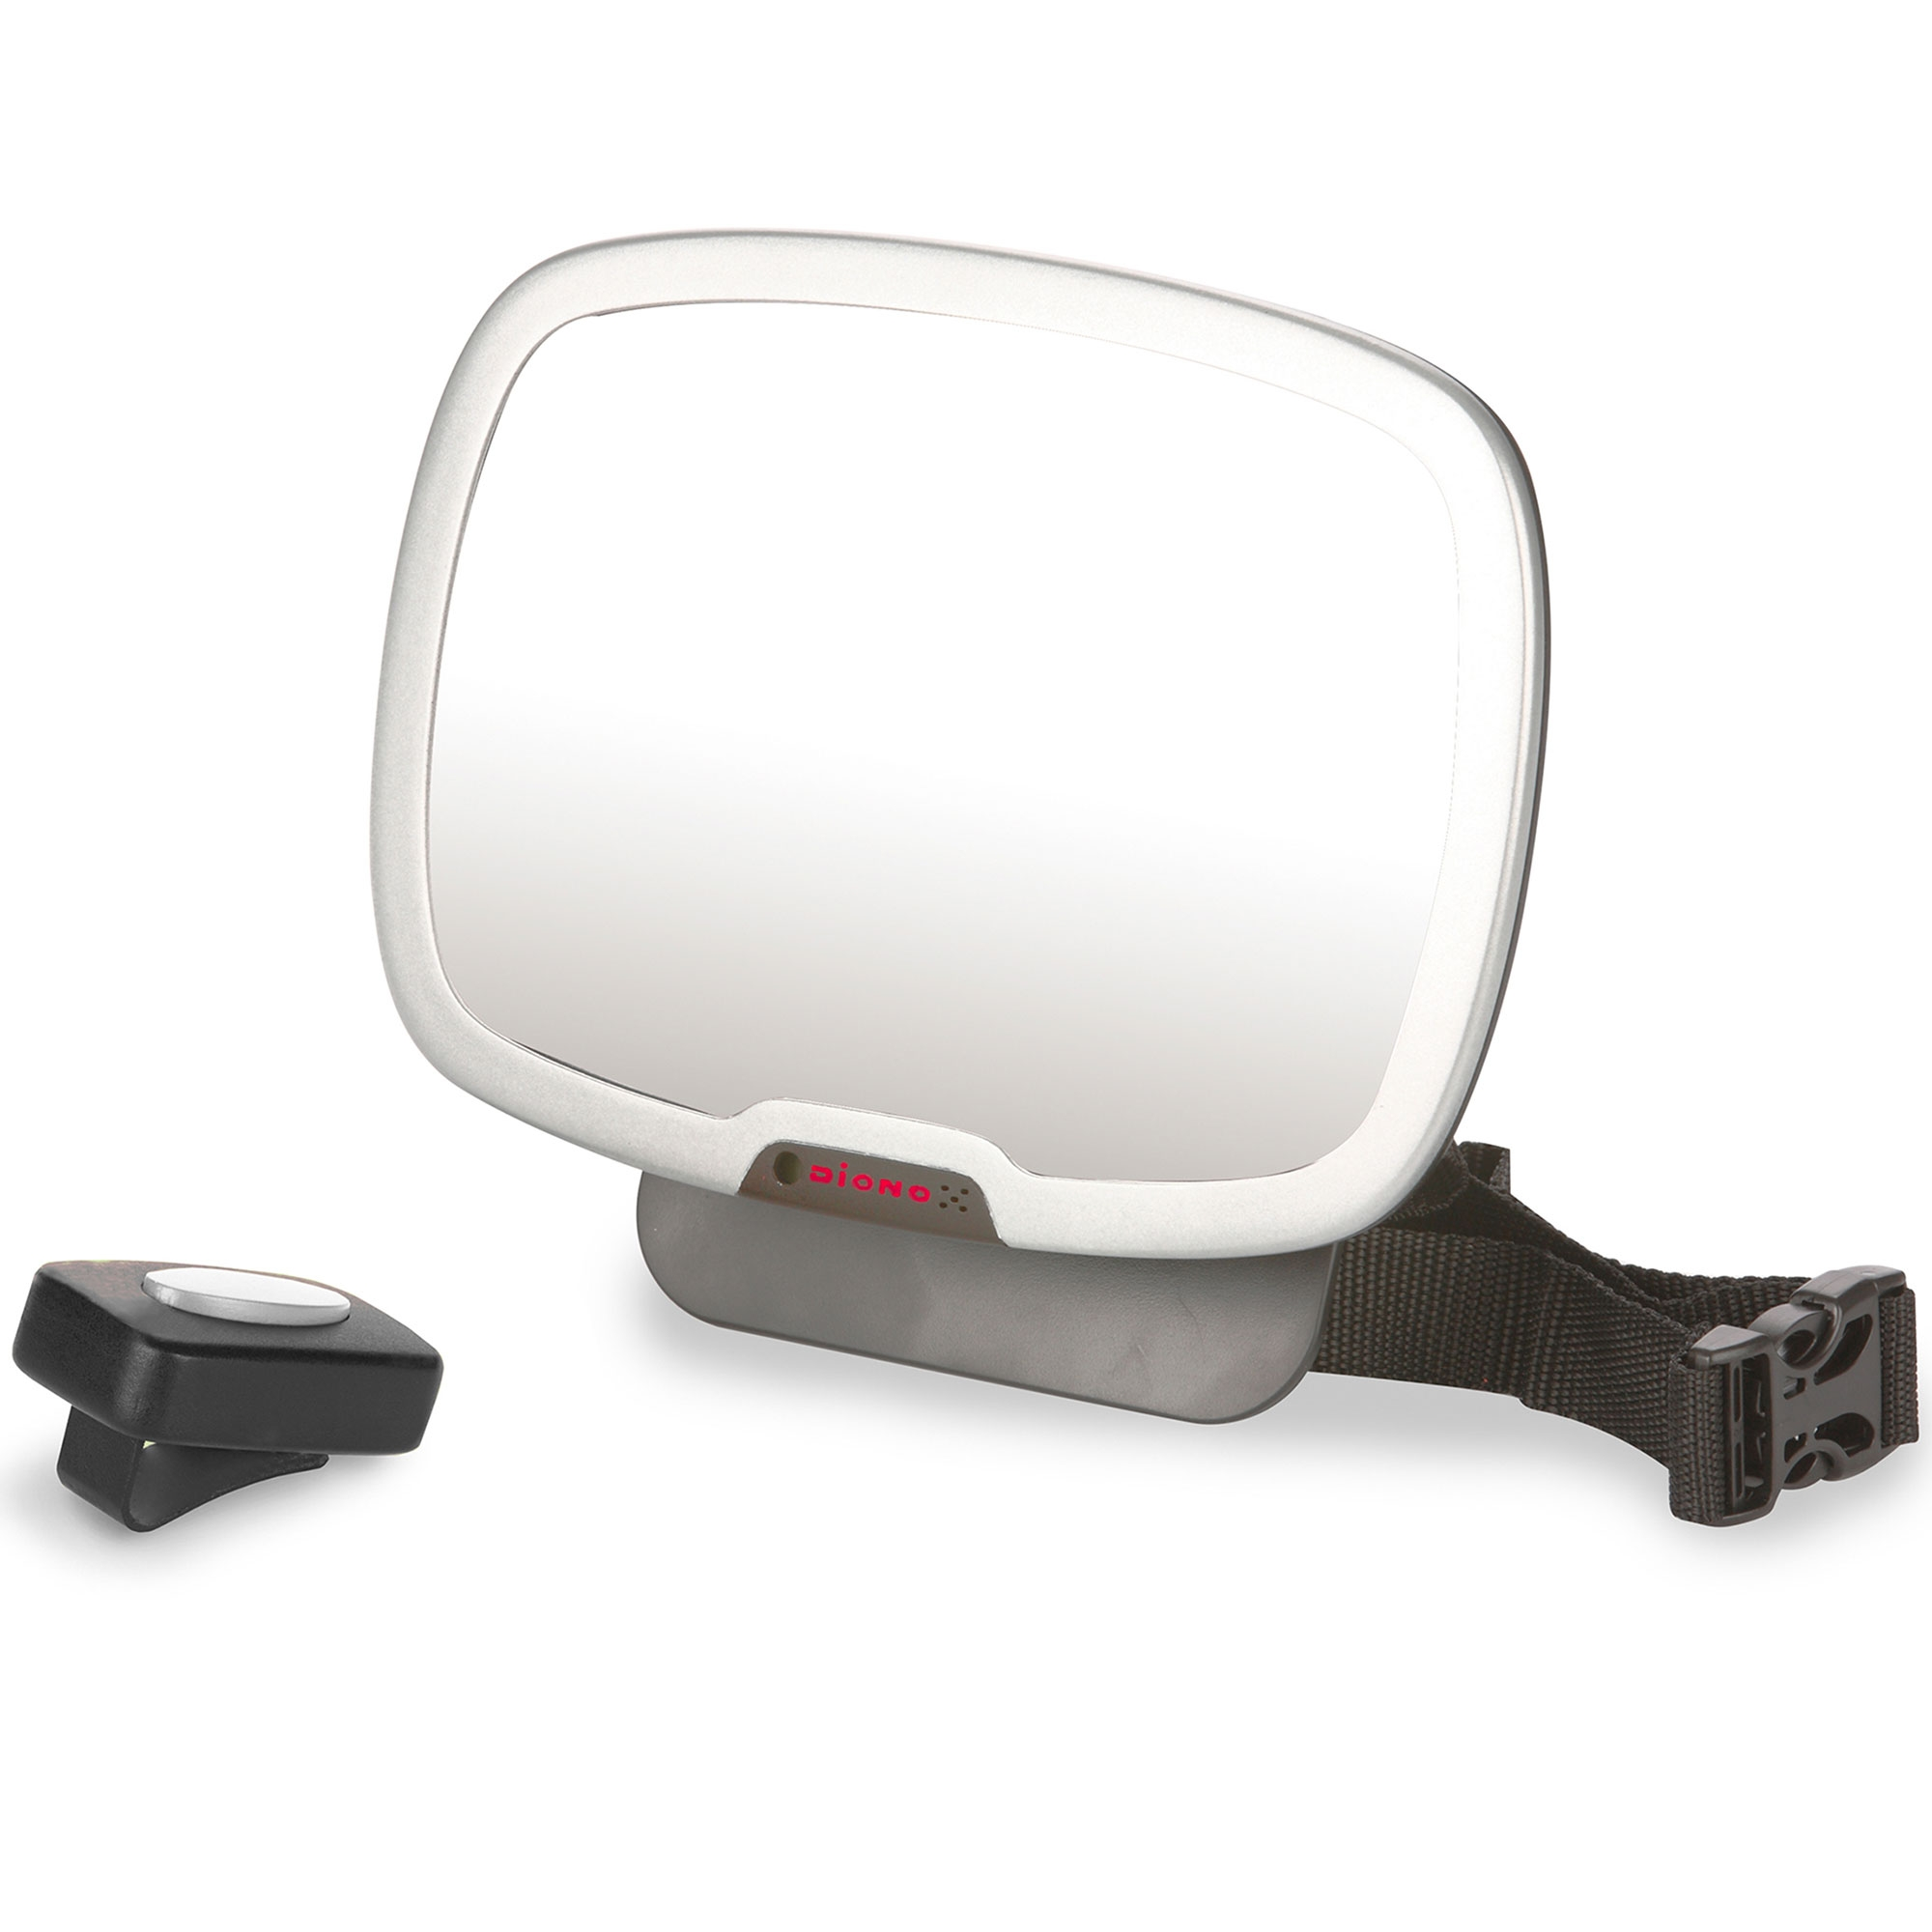 Onco Baby Car Mirror Peace of mind to keep an eye on baby in a rear facing...